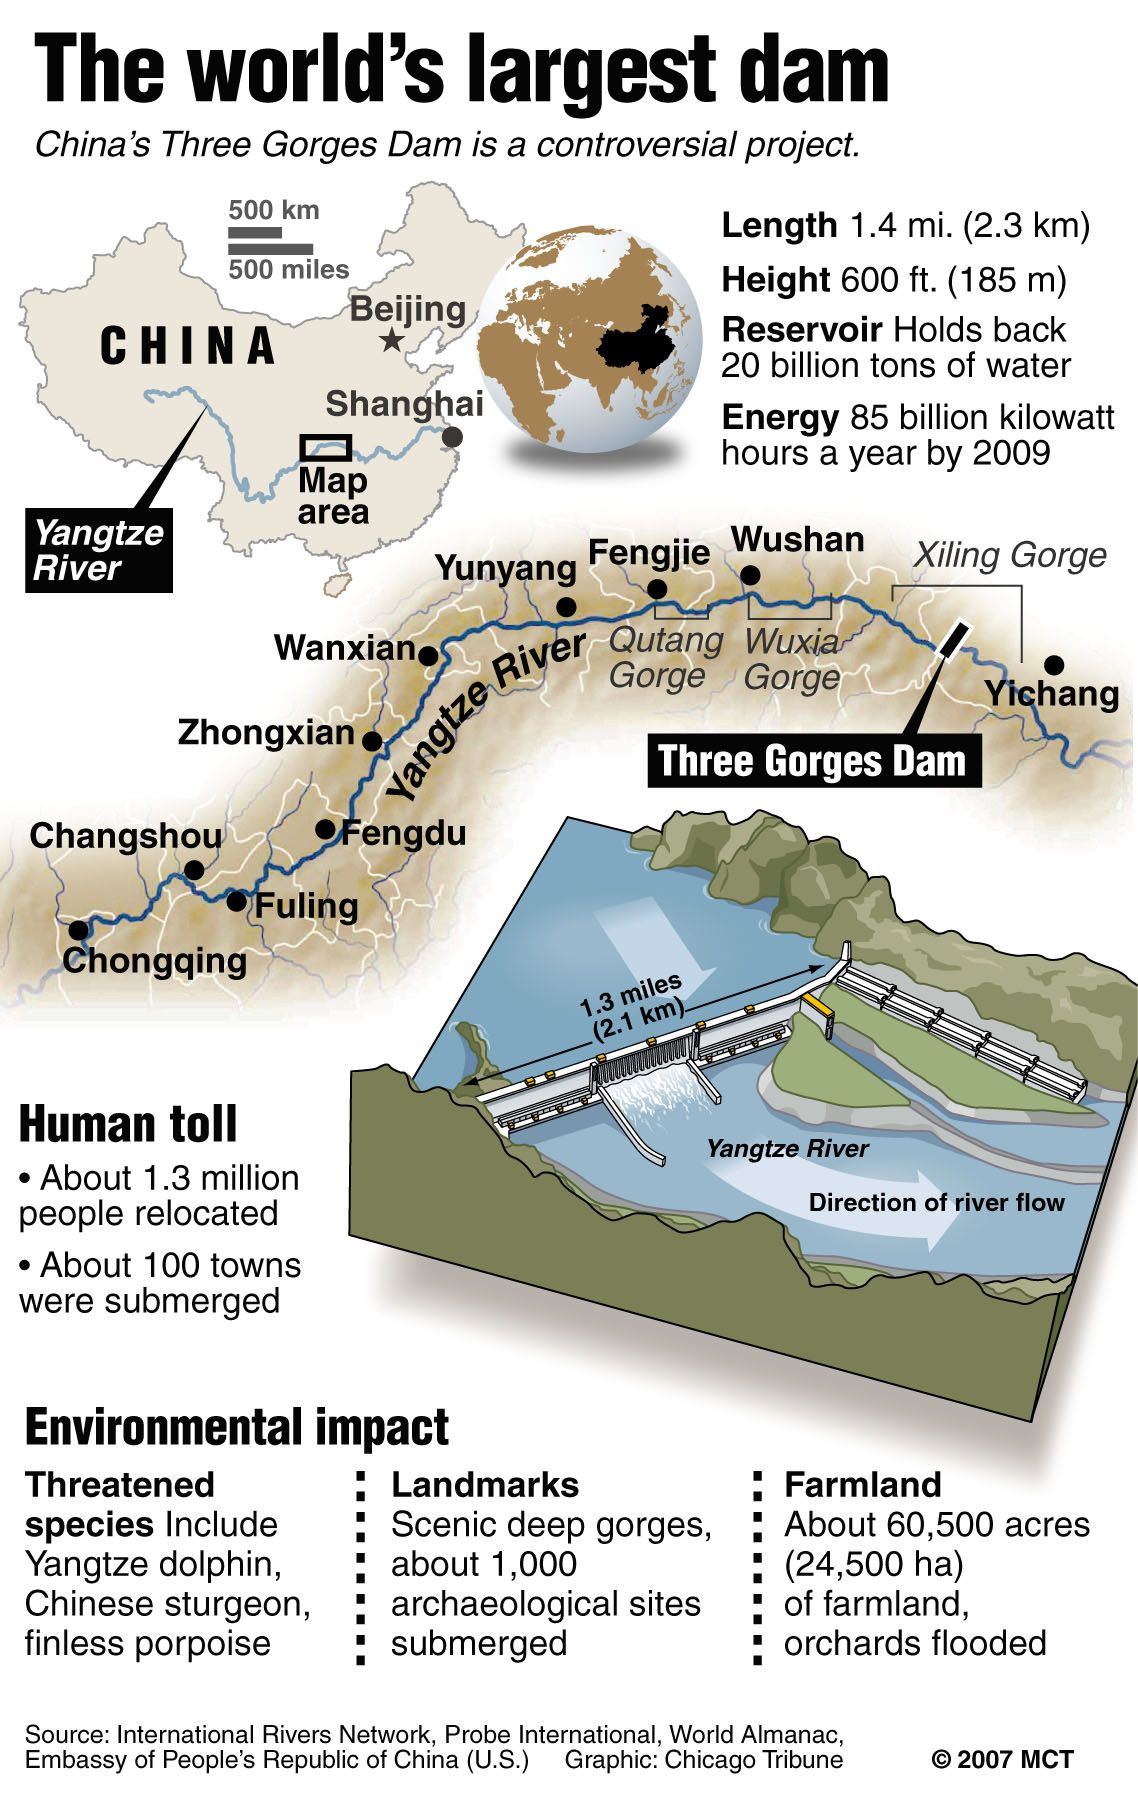 Three gorges dam project china s biggest project since the great wall - Three Gorges Dam